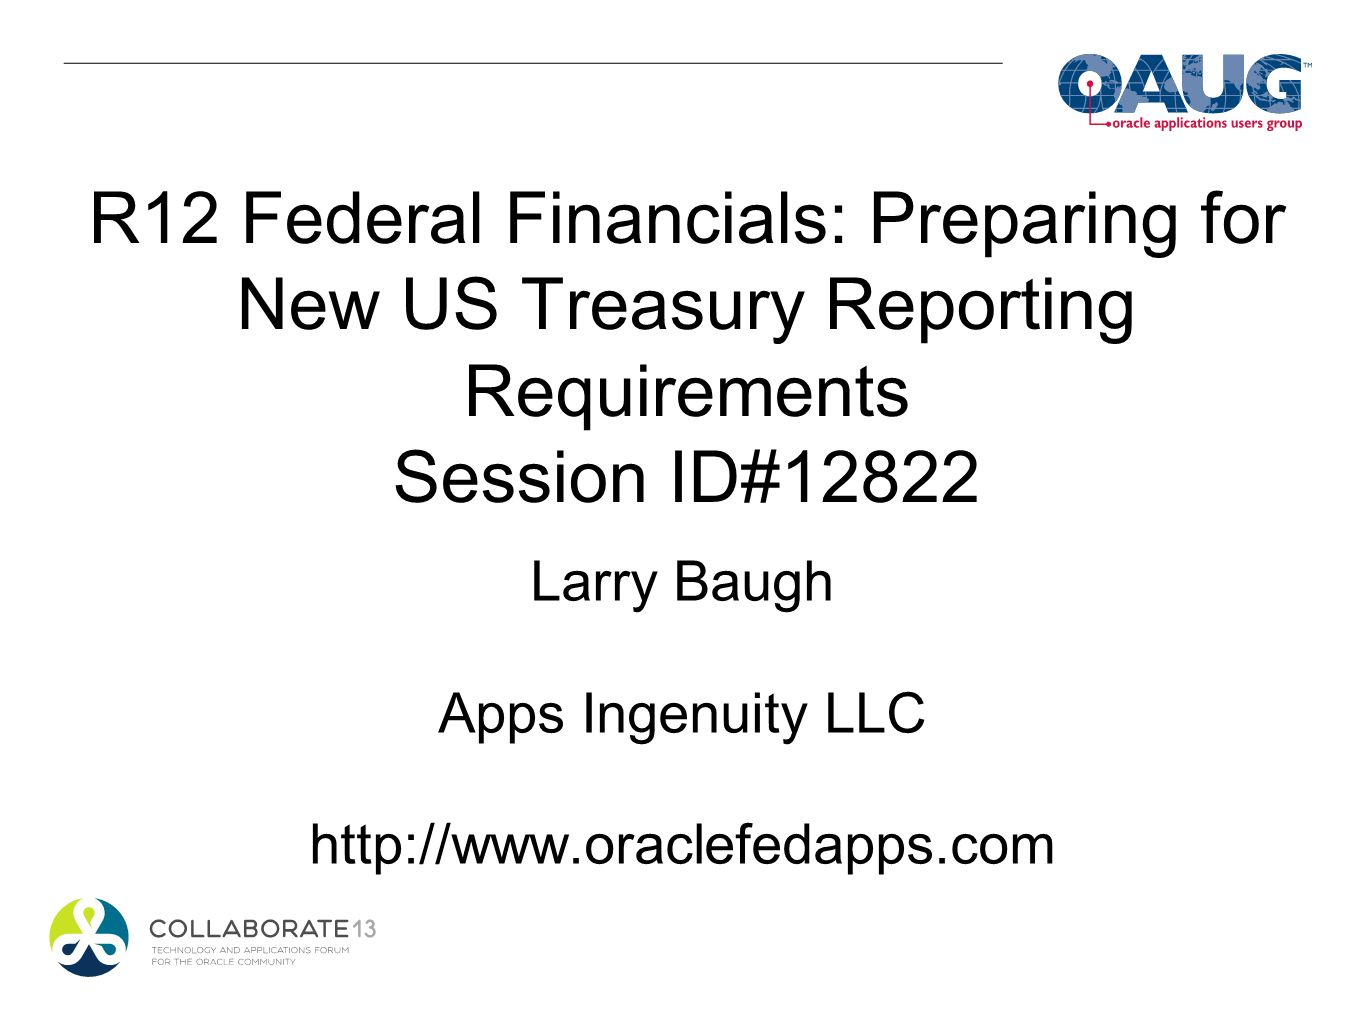 R12 Federal Financials: Preparing for New US Treasury Reporting Requirements Session ID#12822 Larry Baugh Apps Ingenuity LLC http://www.oraclefedapps.